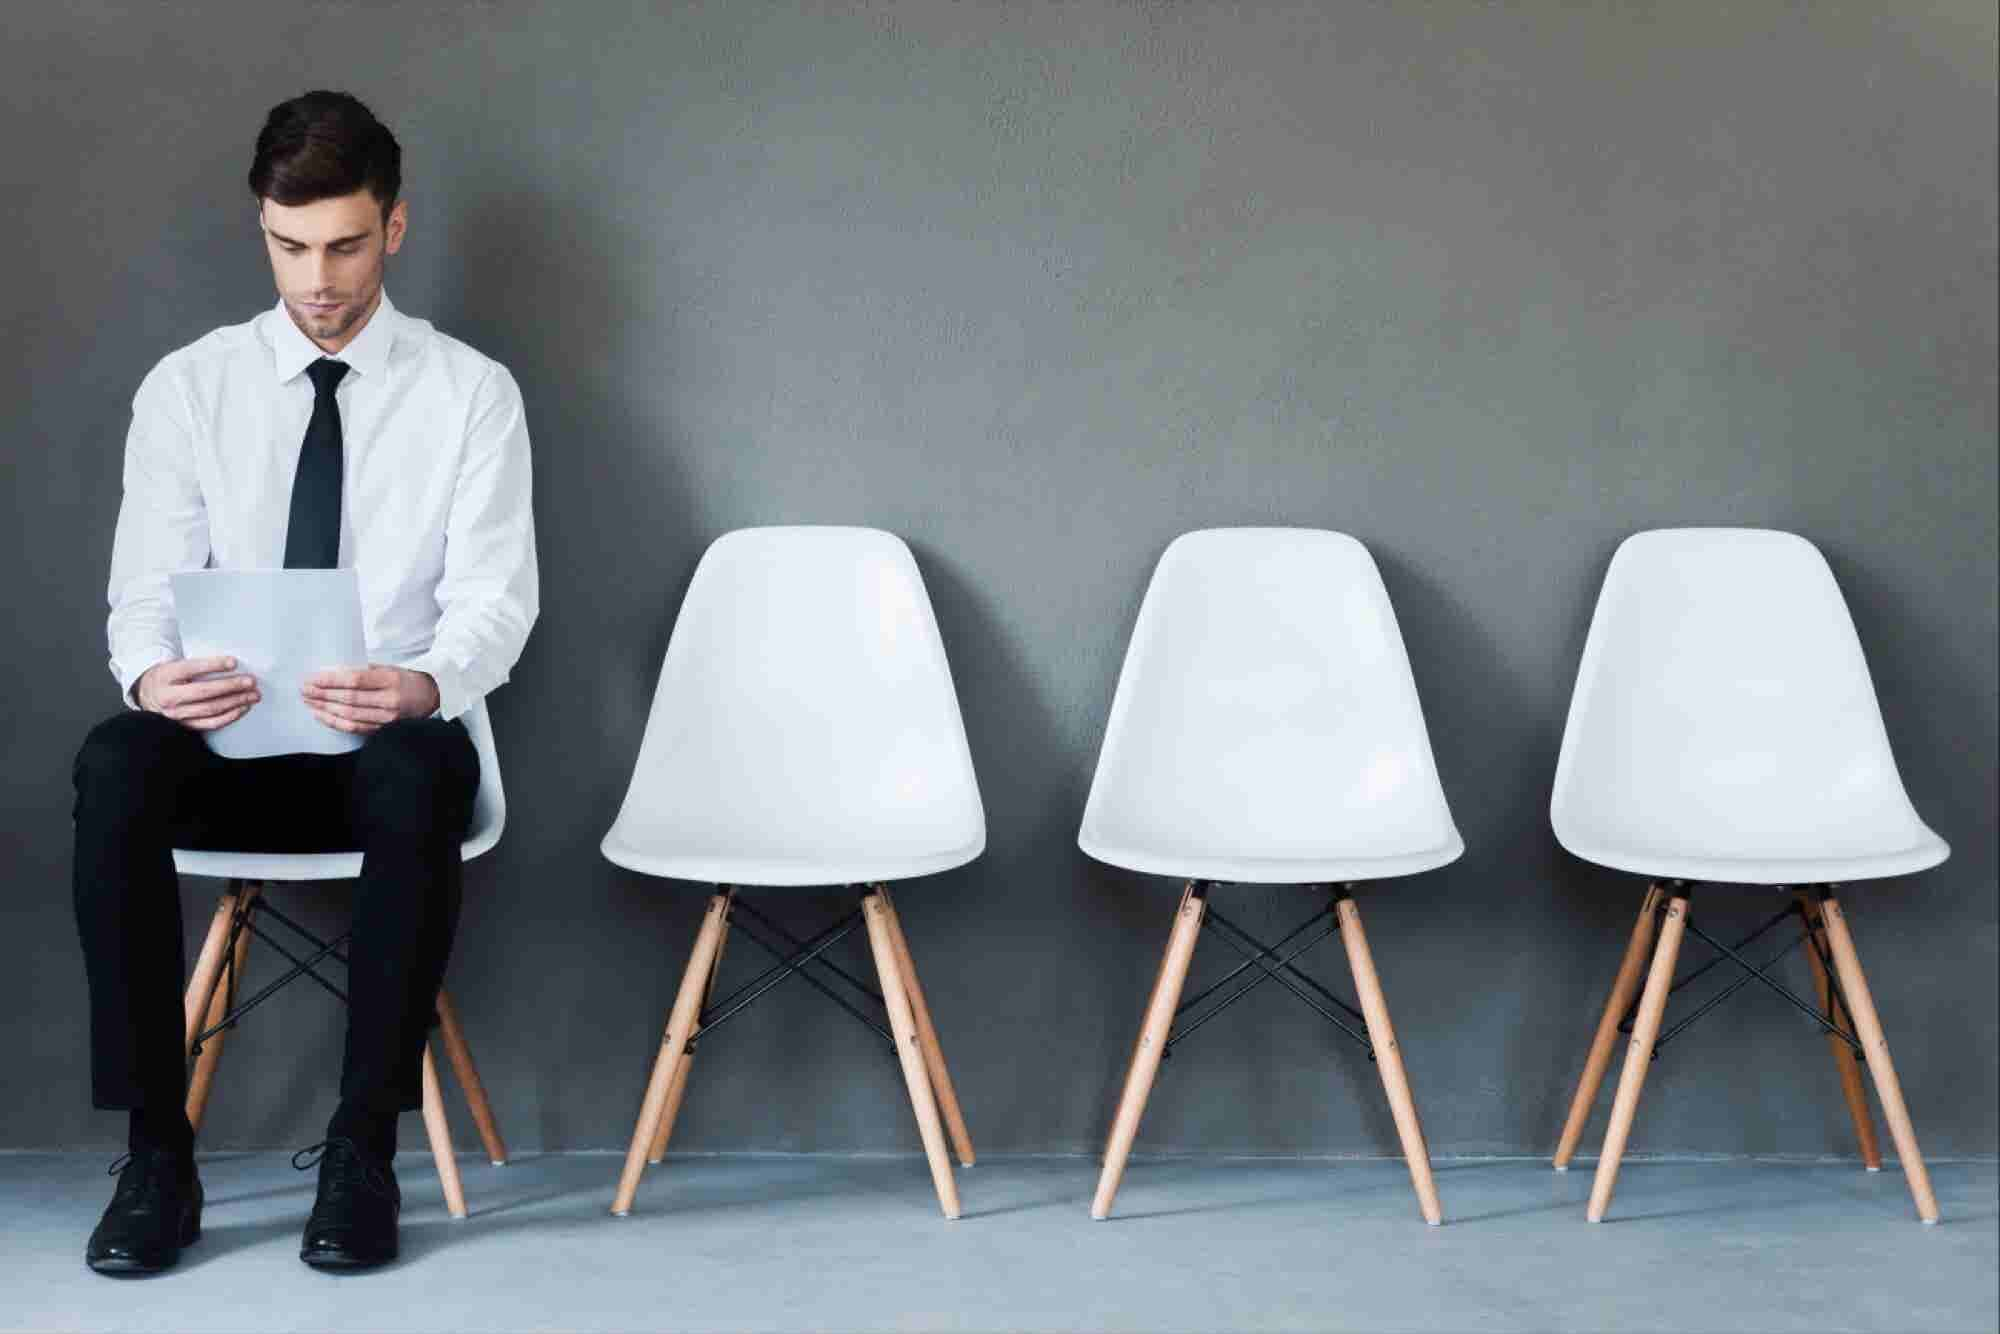 Tips for Interviewing Every Hiring Manager Should Know